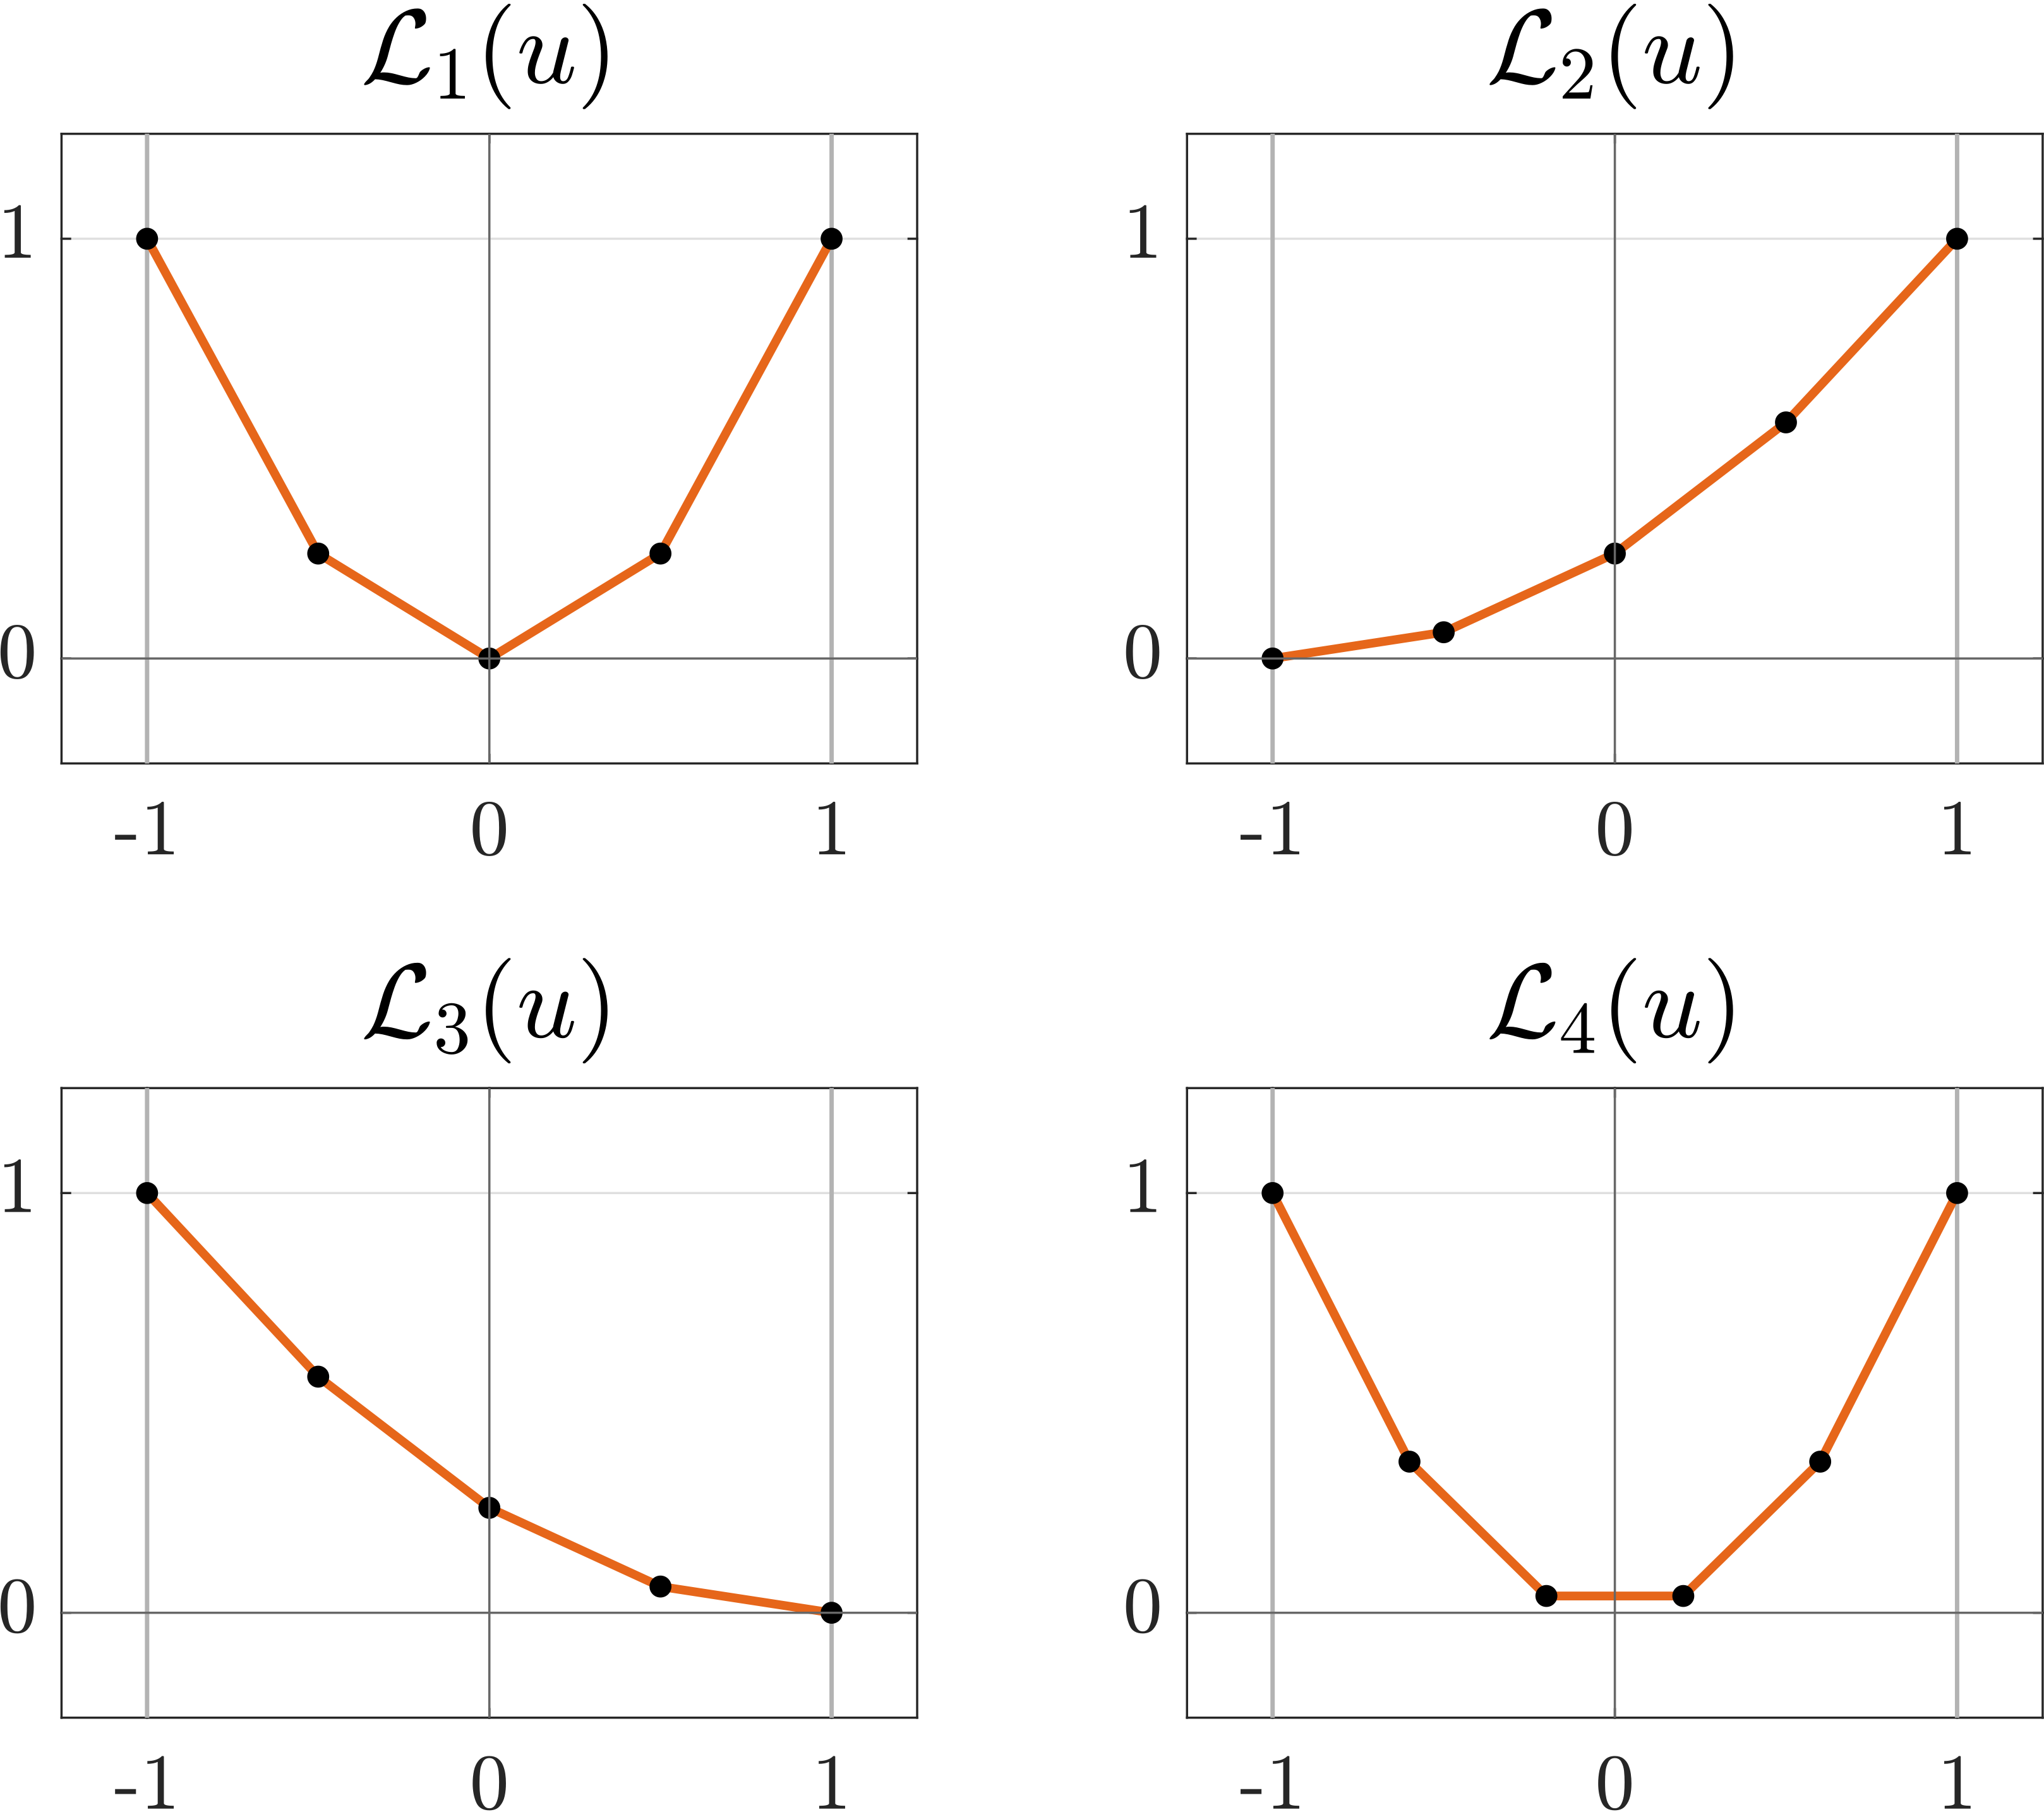 Figure 2. examples of convex piecewise affine penalization